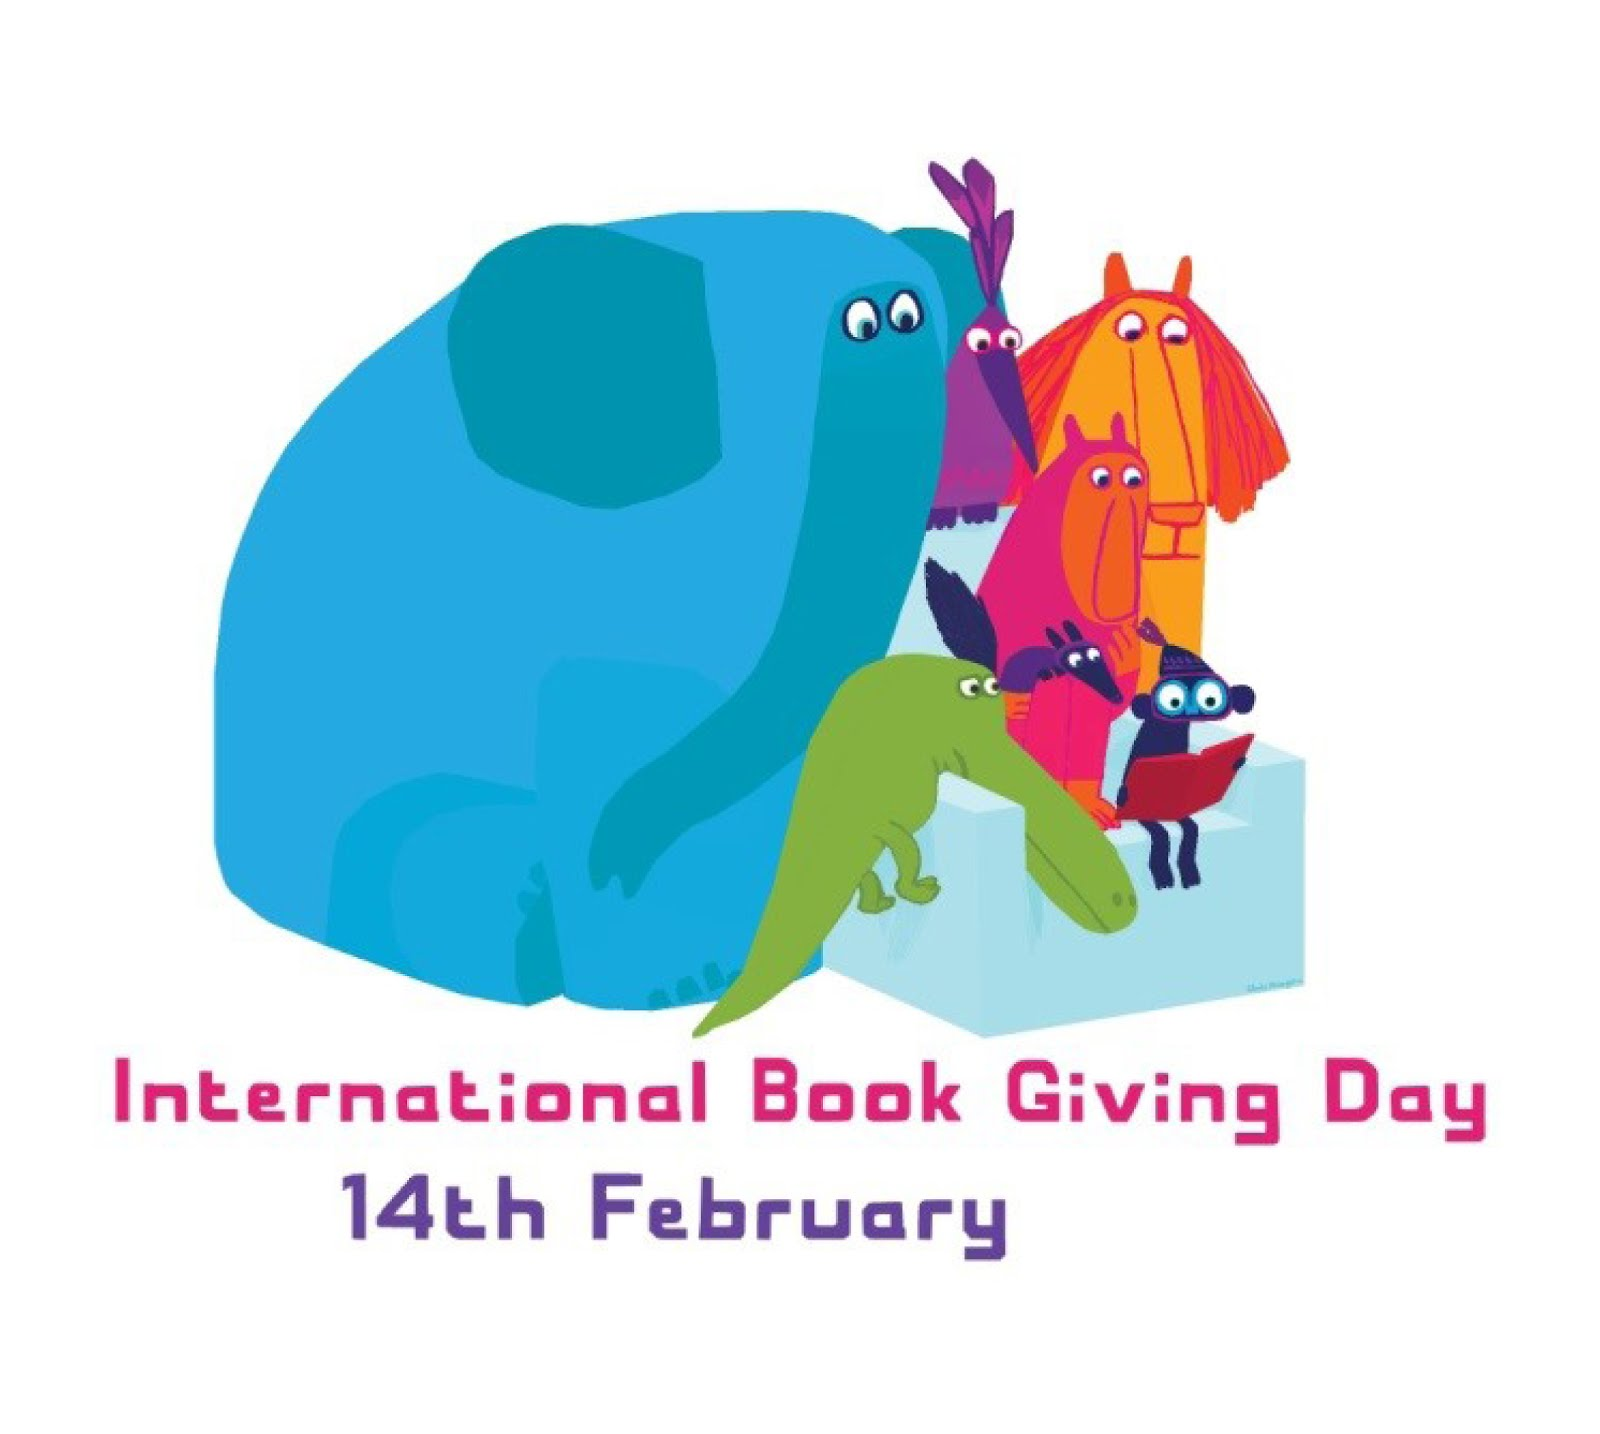 Bookgiving Day 2019